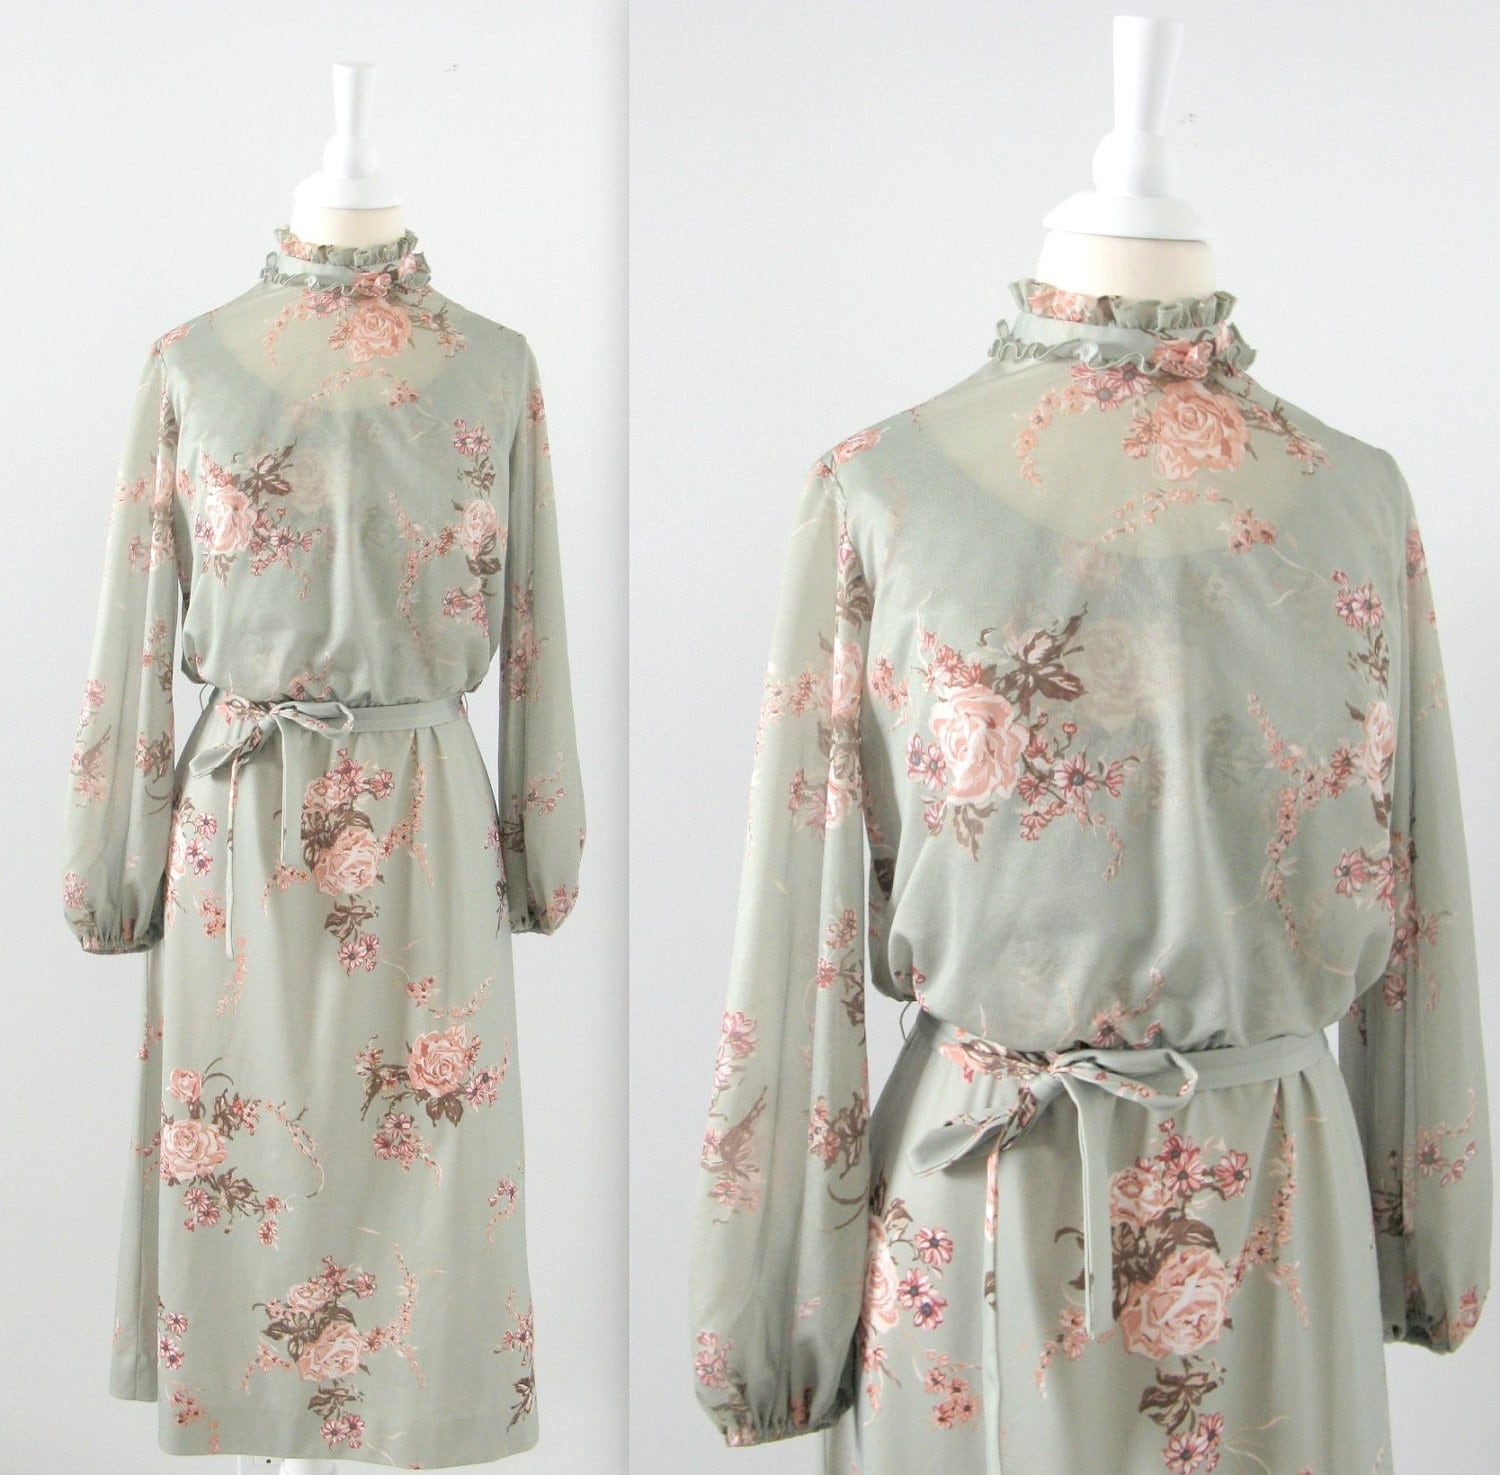 Vintage Floral Day Dress  - Sage Green and Pink - 1960s - Small - TwoMoxie